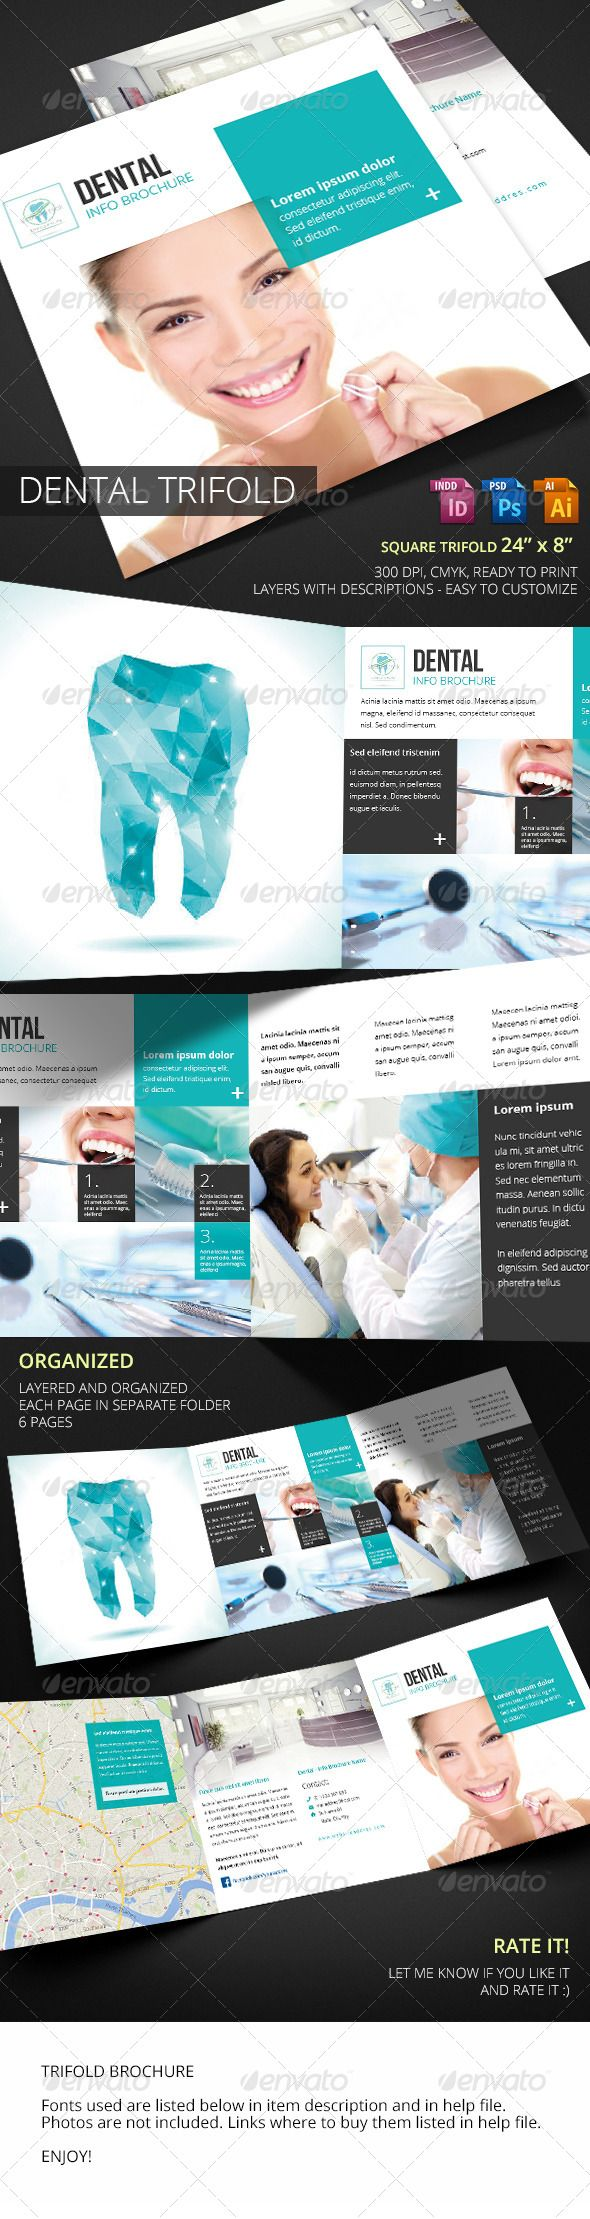 Dental Square Trifold  #hospital #medic • Available here → http://graphicriver.net/item/dental-square-trifold/7281373?s_rank=330&ref=pxcr